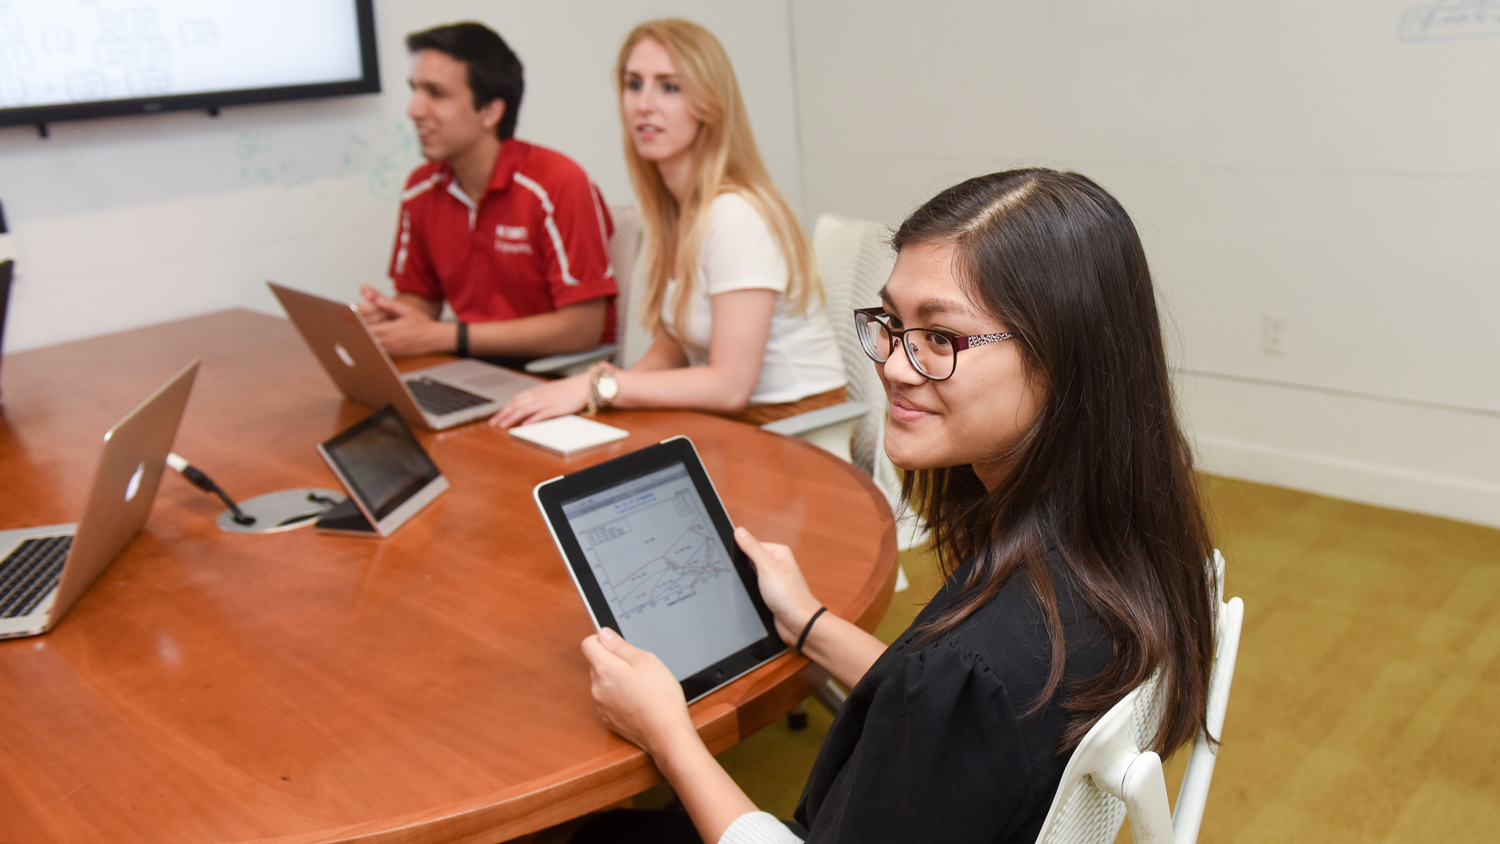 students on Ipad - Academics - College of Natural Resources at NCState University